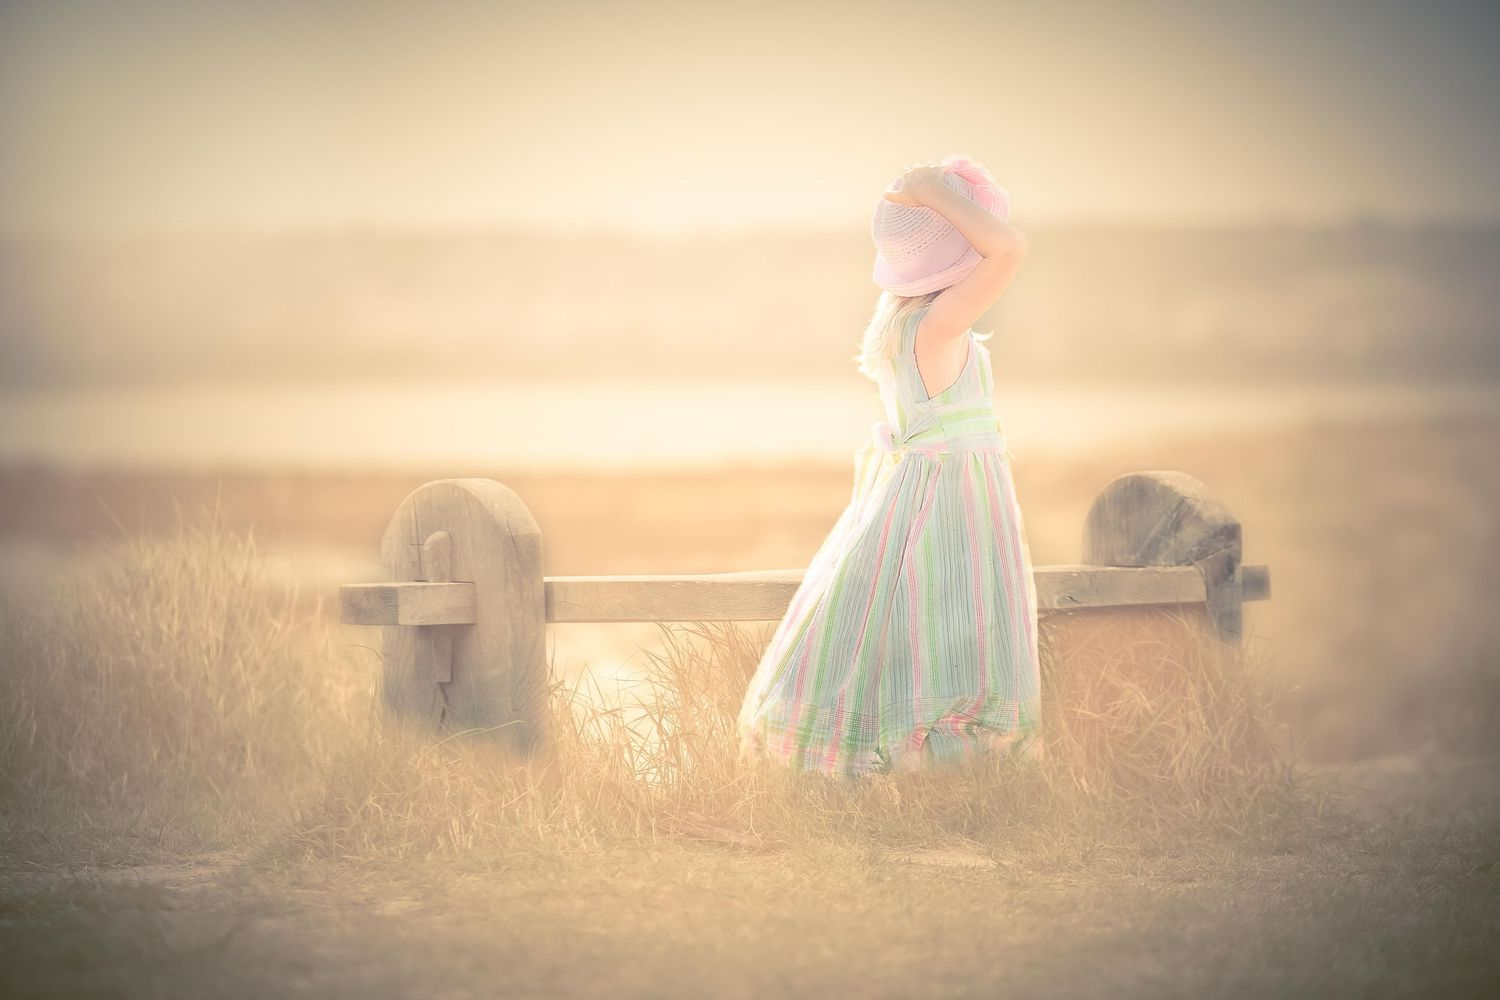 girl in a dress and hat by a bench at the beach, soft focus